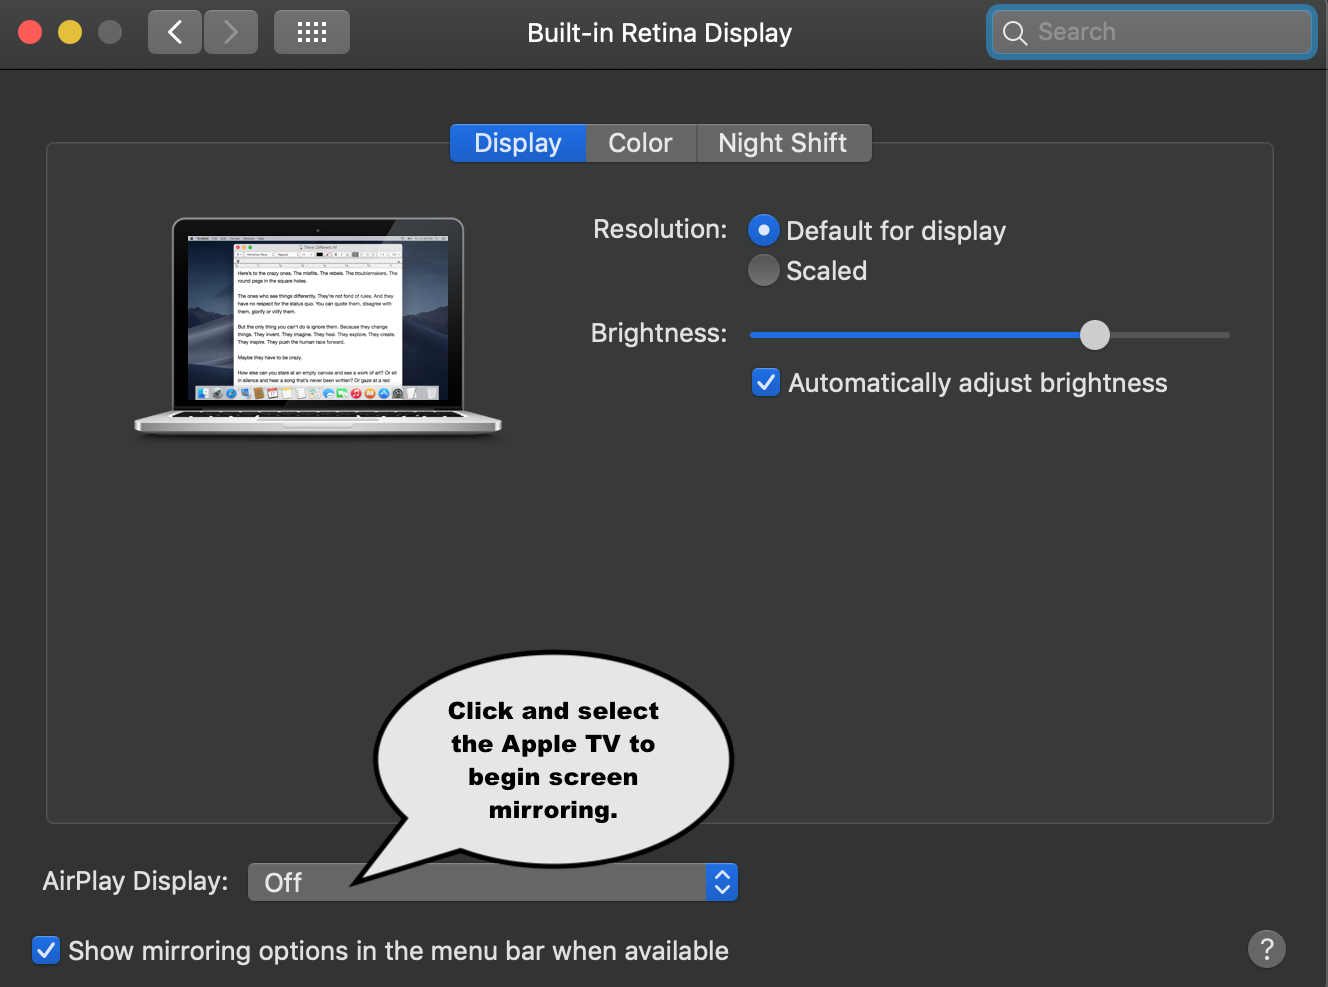 How do I AirPlay from Mac to Apple TV? - WBFYC